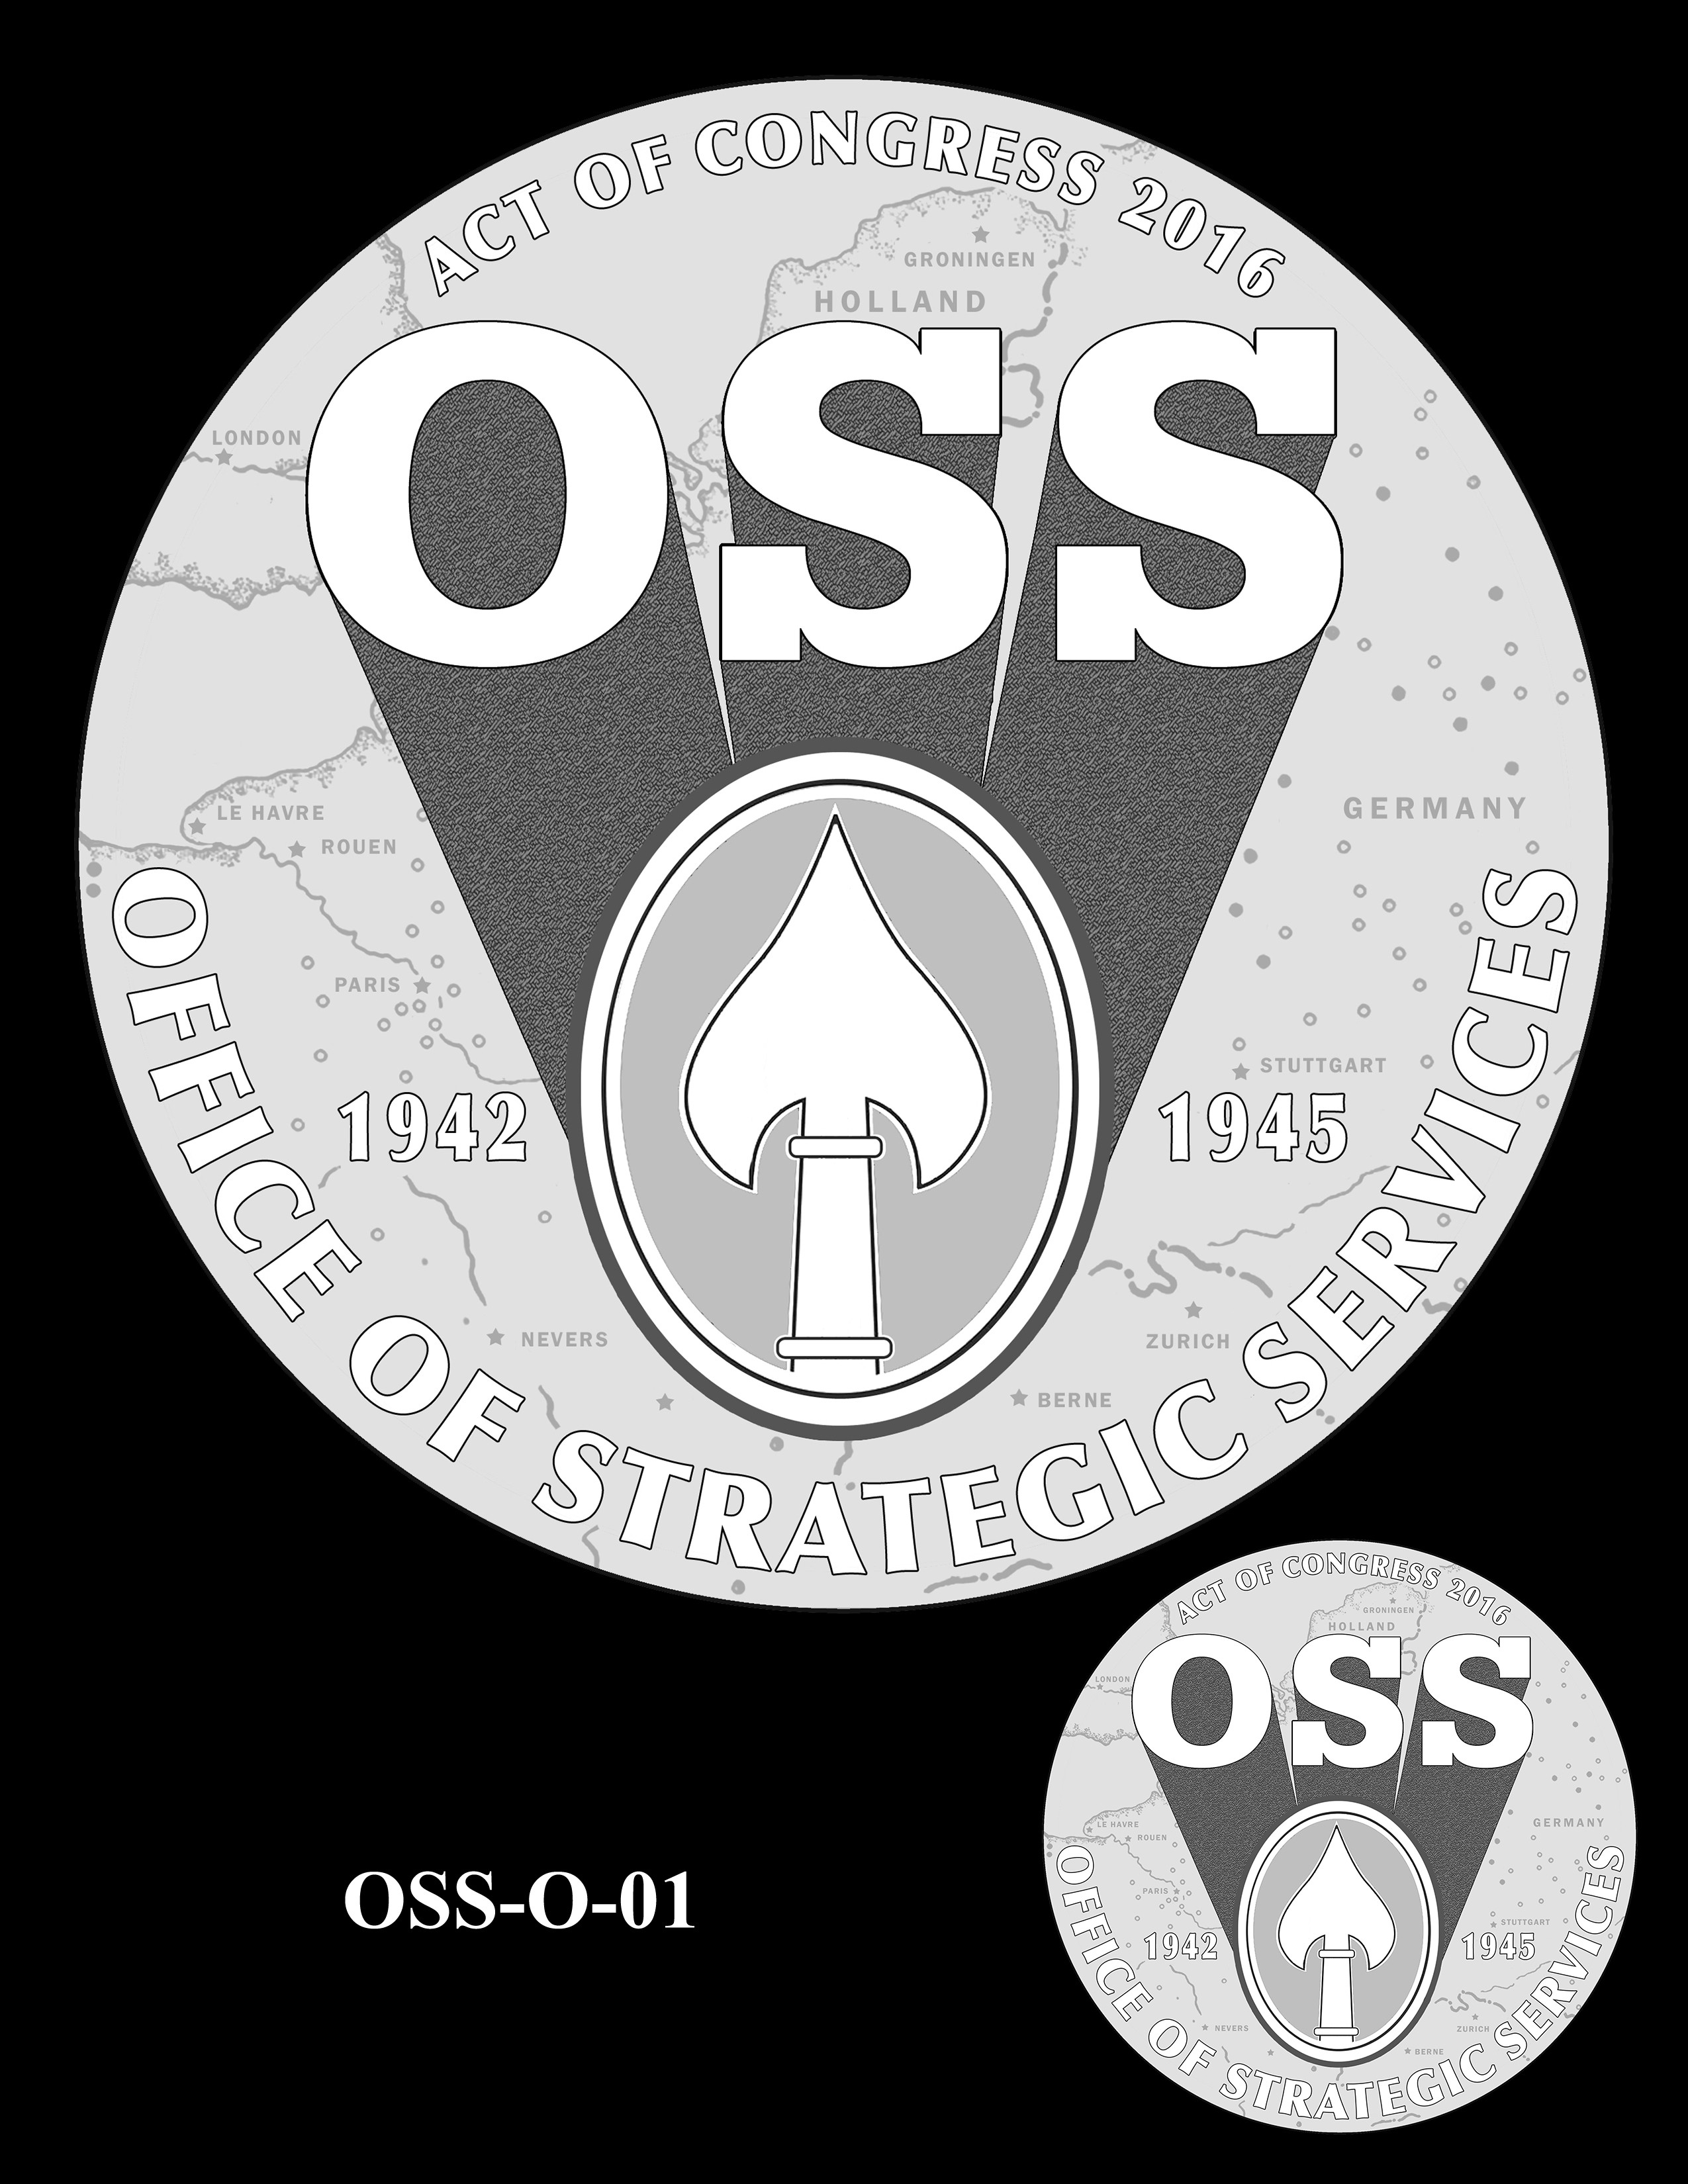 OSS-O-01 -- Office of Strategic Services Congressional Gold Medal